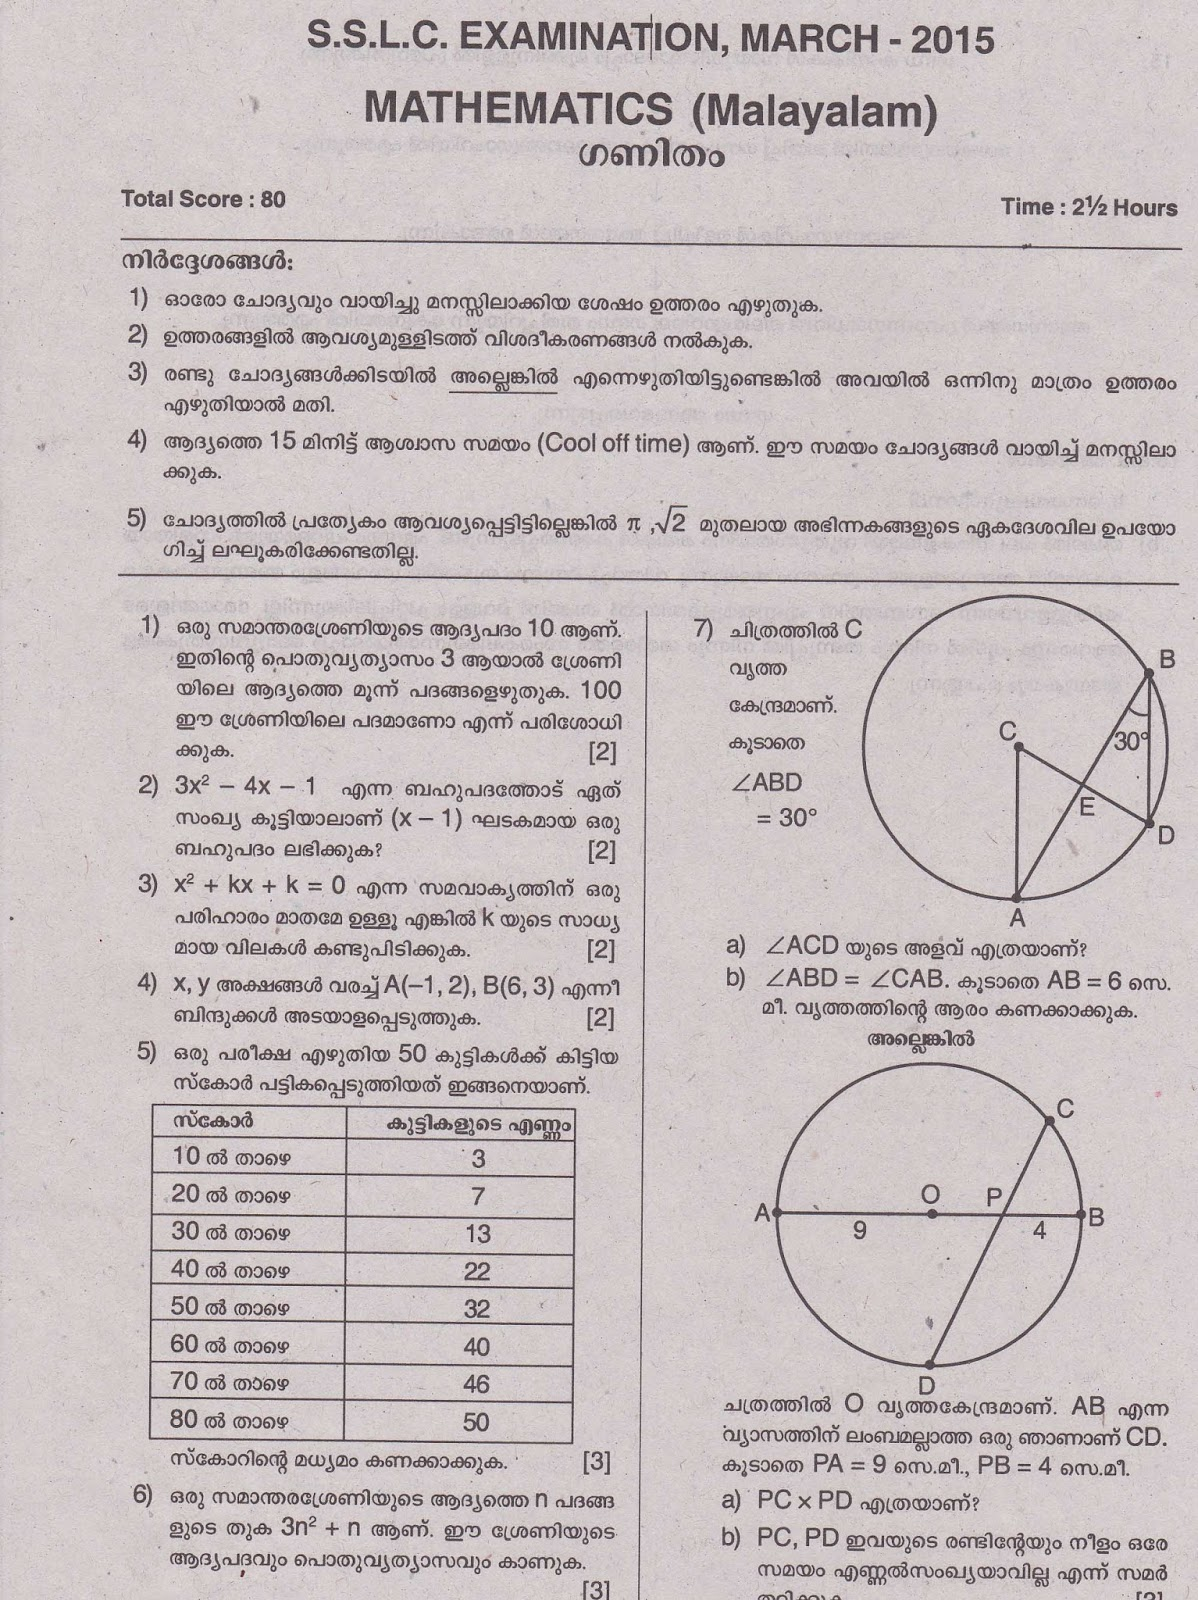 mathematics question paper An essential subject for all learners, cambridge igcse mathematics is a fully examined course which encourages the development of mathematical knowledge as a key life.